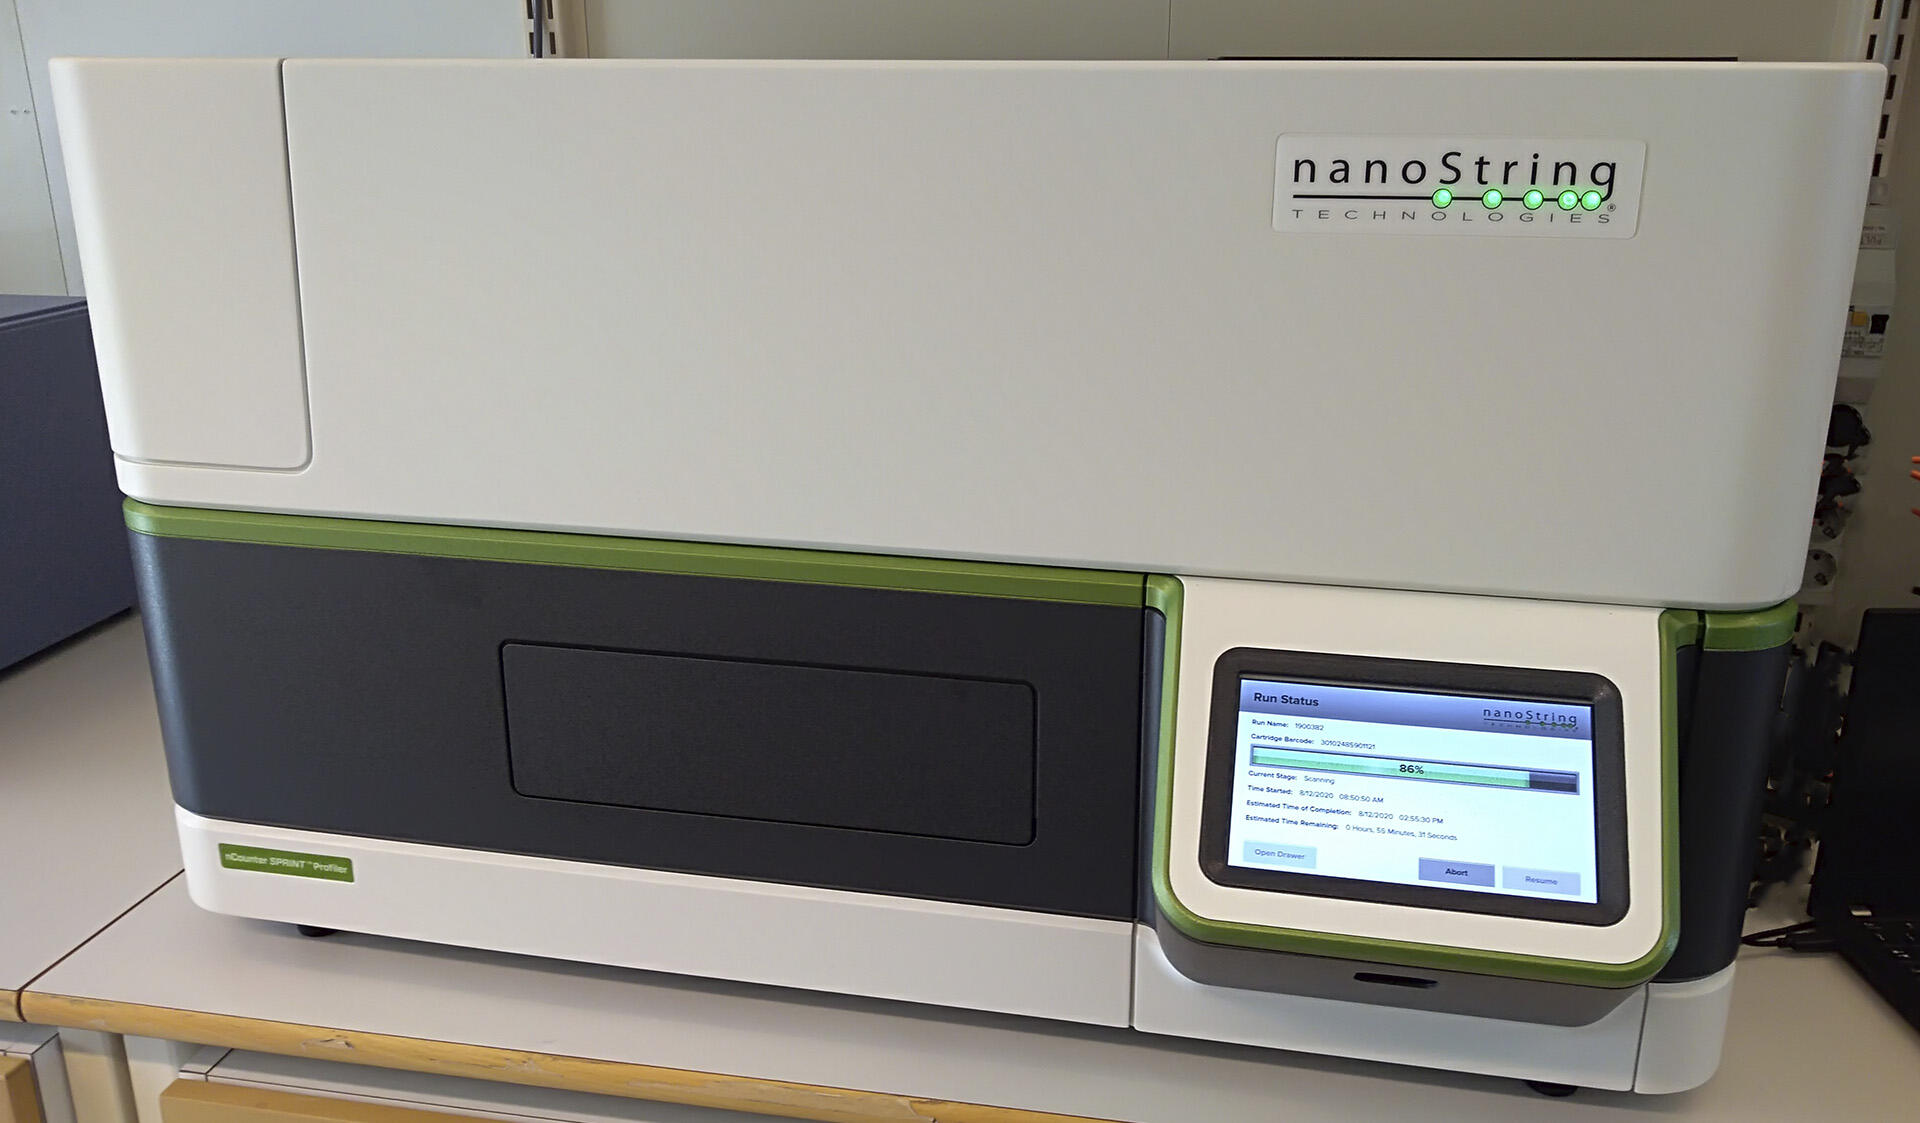 NanoString platform provides a simple and cost effective solution for multiplex analysis of up to 770 RNA, DNA, or protein targets from your precious samples.